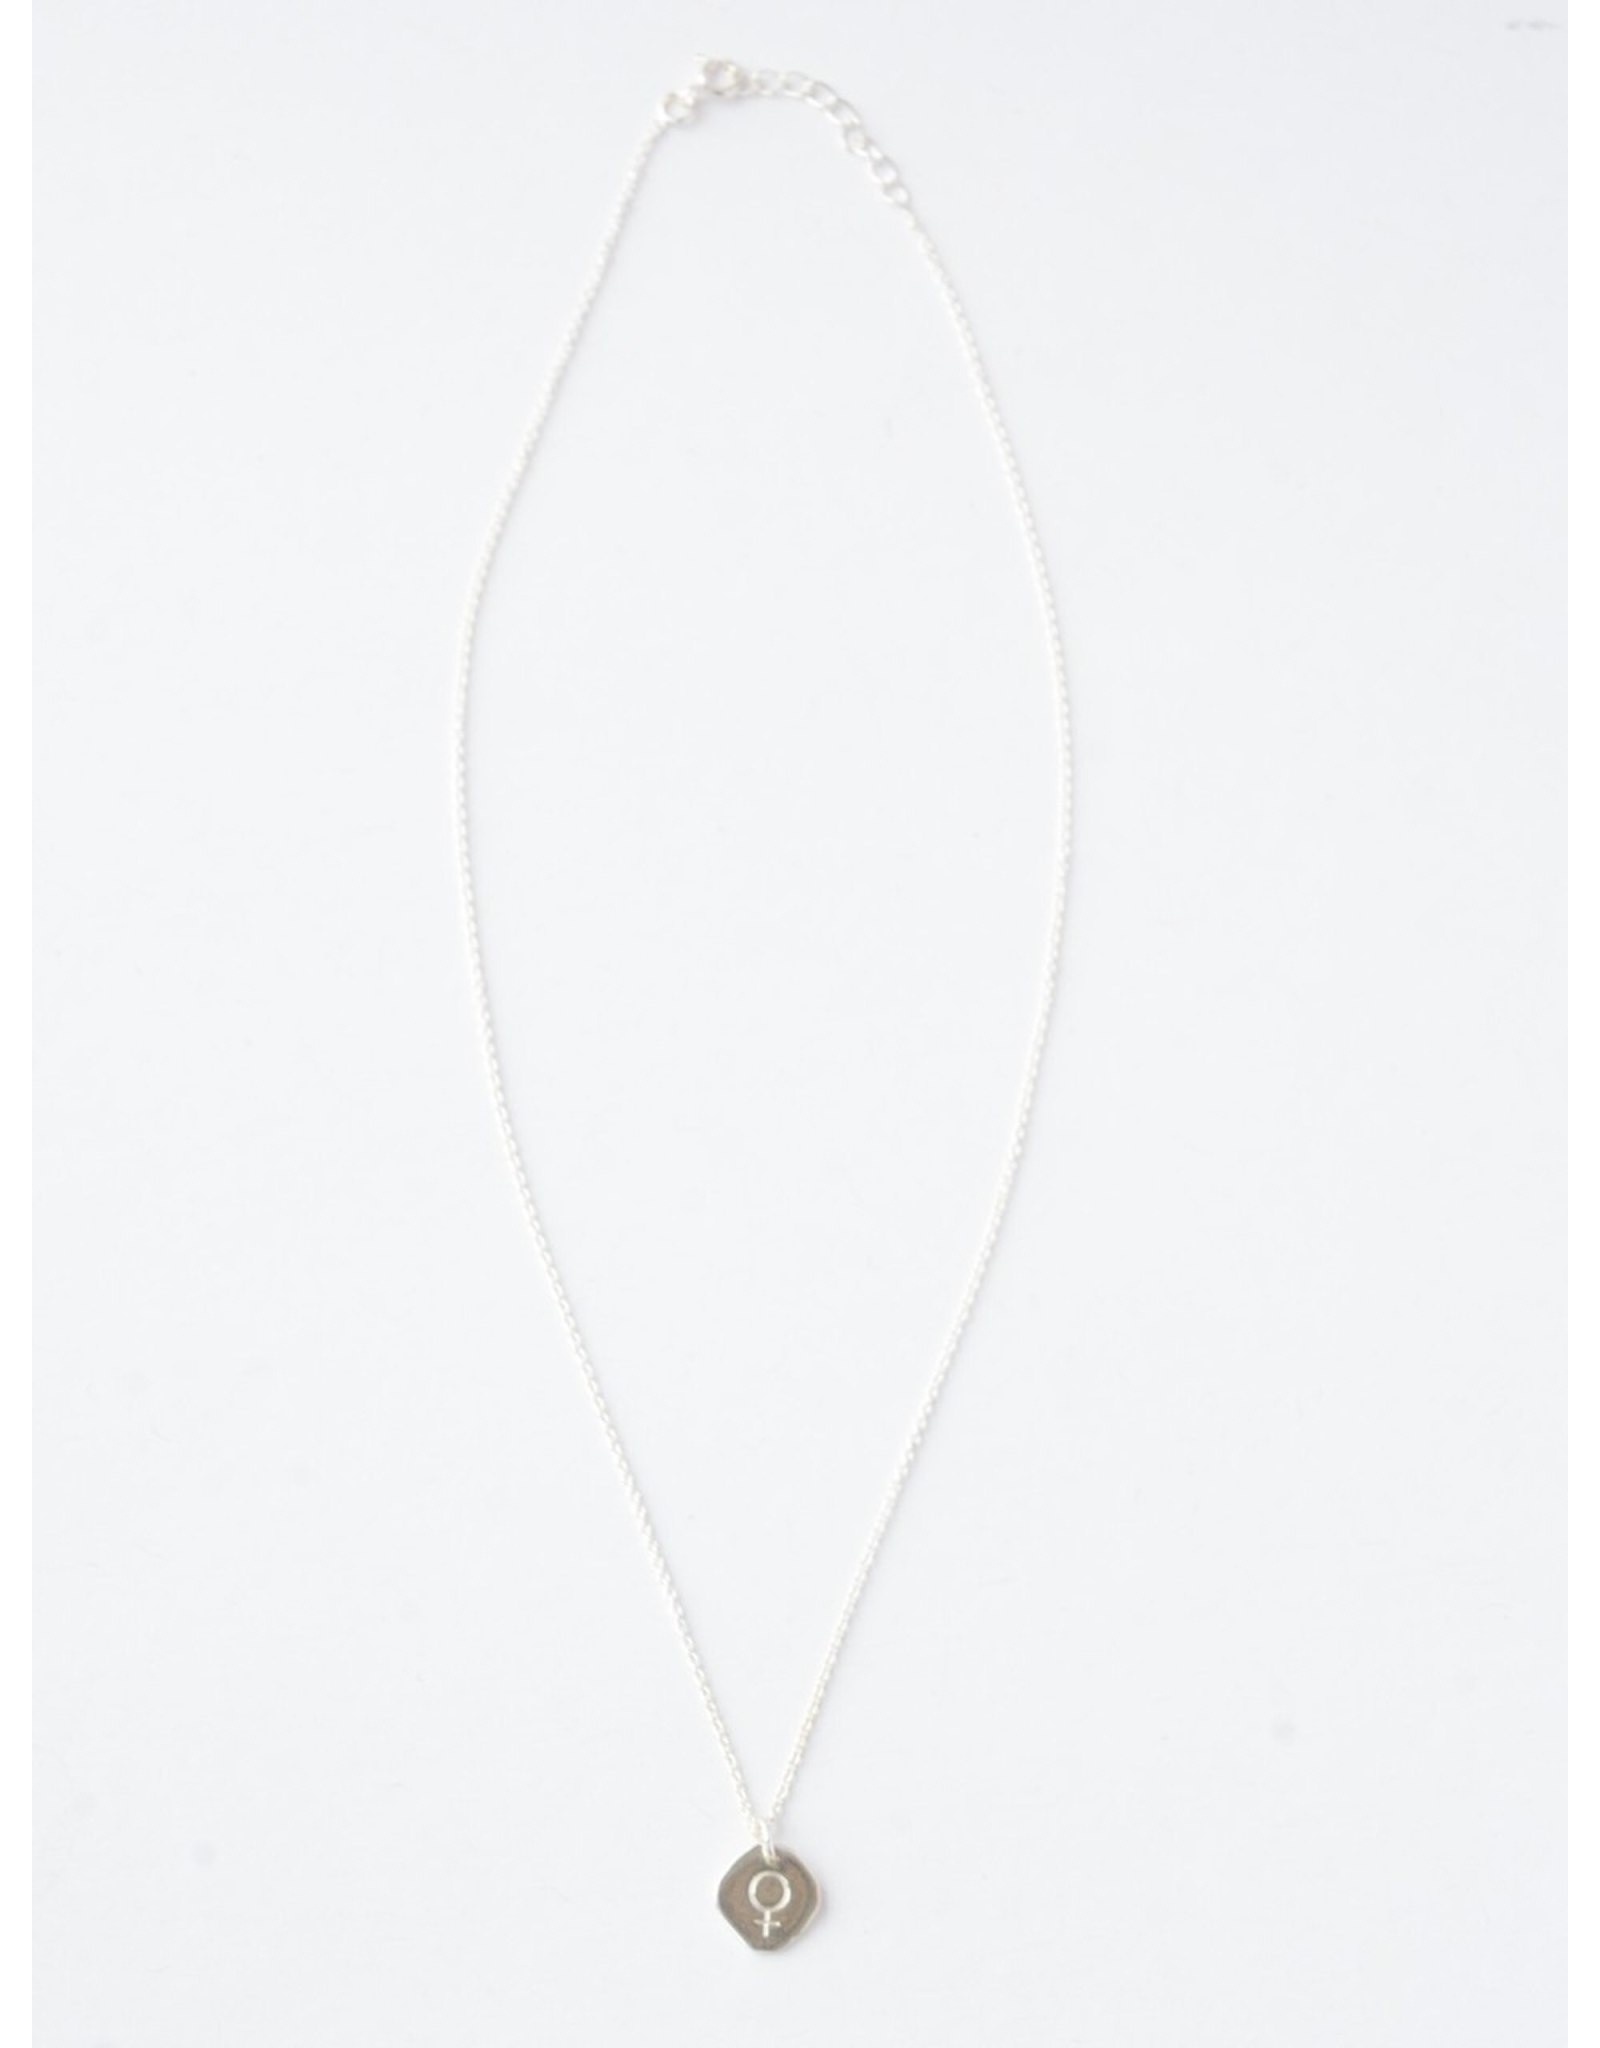 Virtuous Venus Necklace, Sterling Silver, India